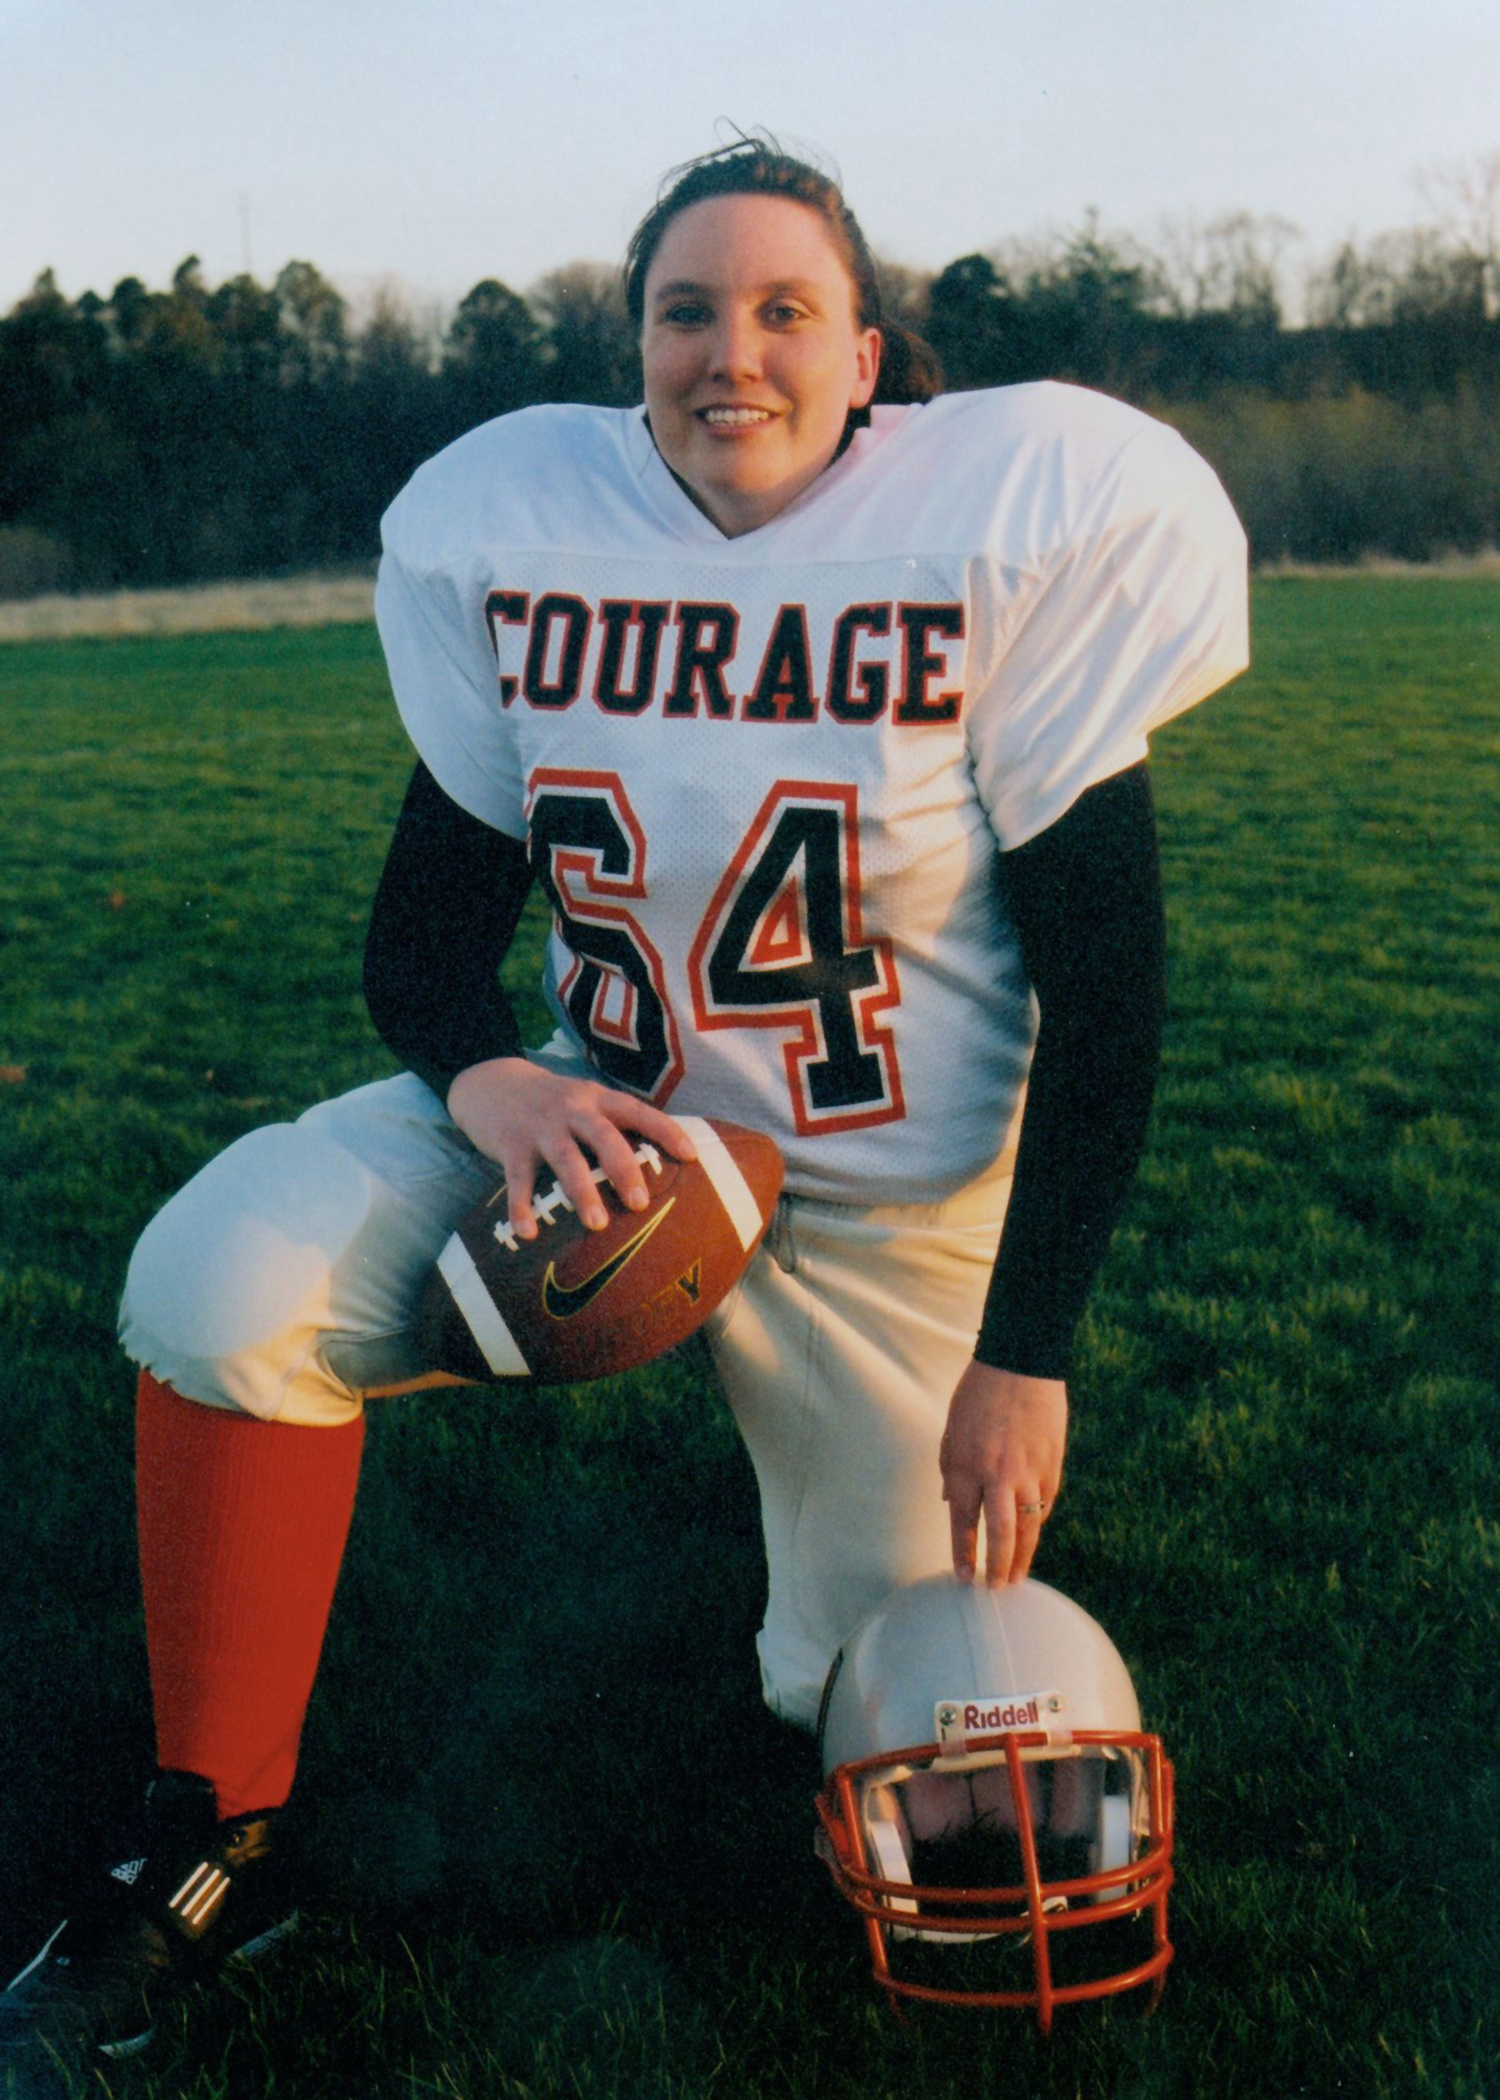 Female pro football players out to win … respect